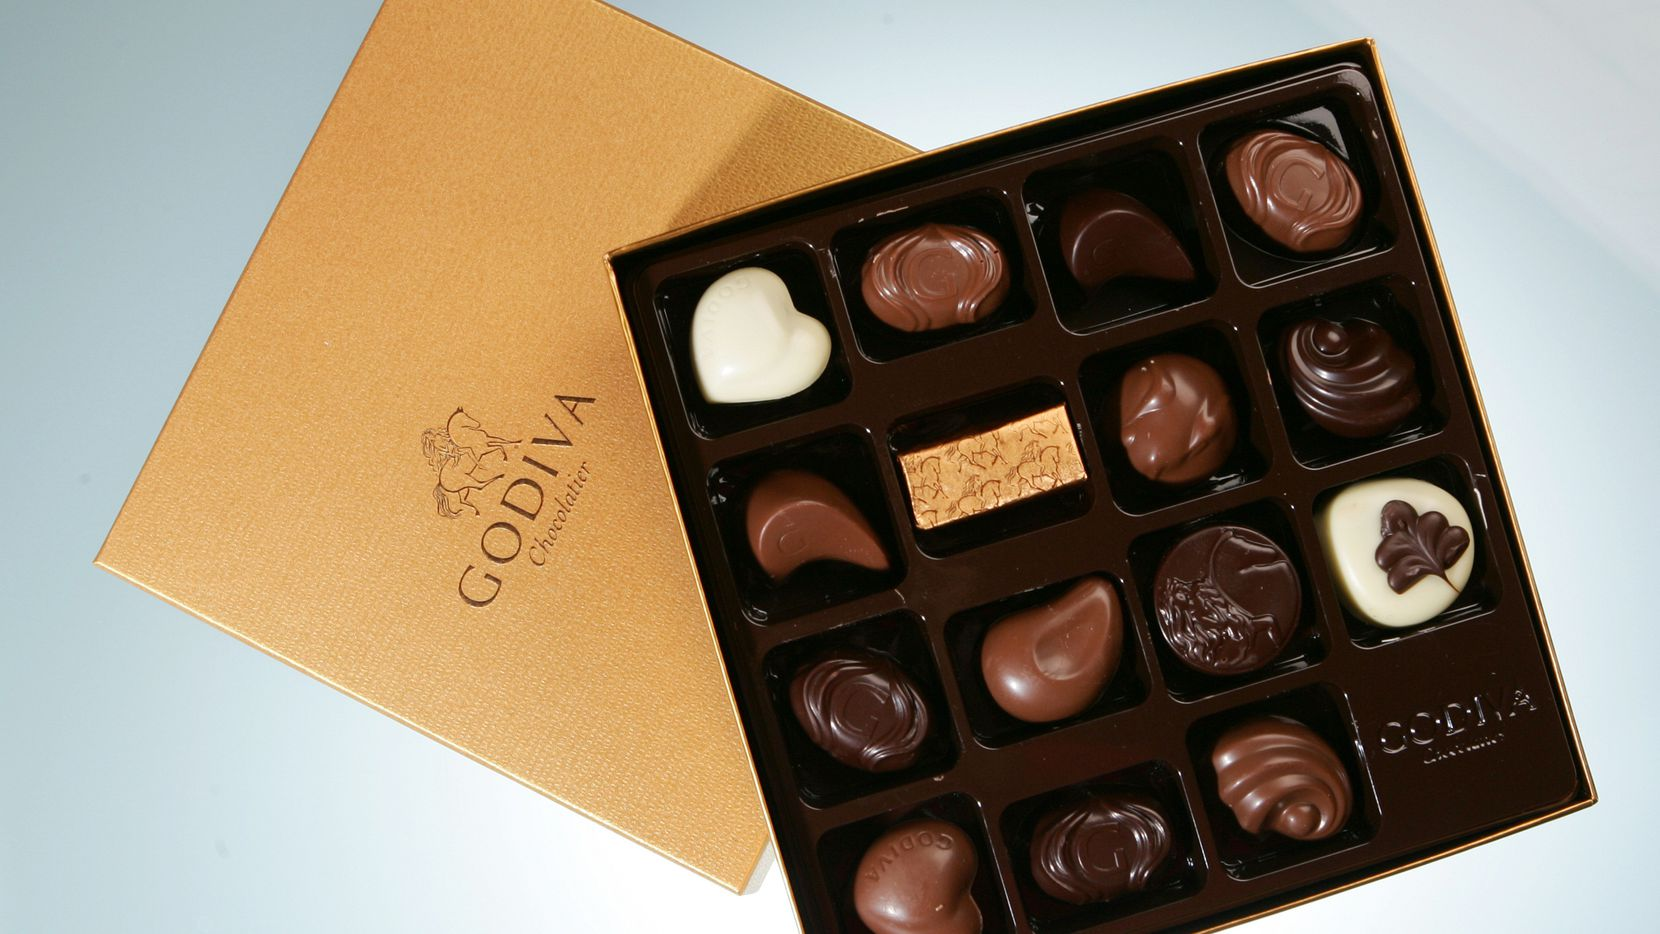 Godiva chocolates, a brand founded in Belgium in 1926, had been owned by Campbell Soup until it was sold in 2007 to a Turkish food company that owns it today.